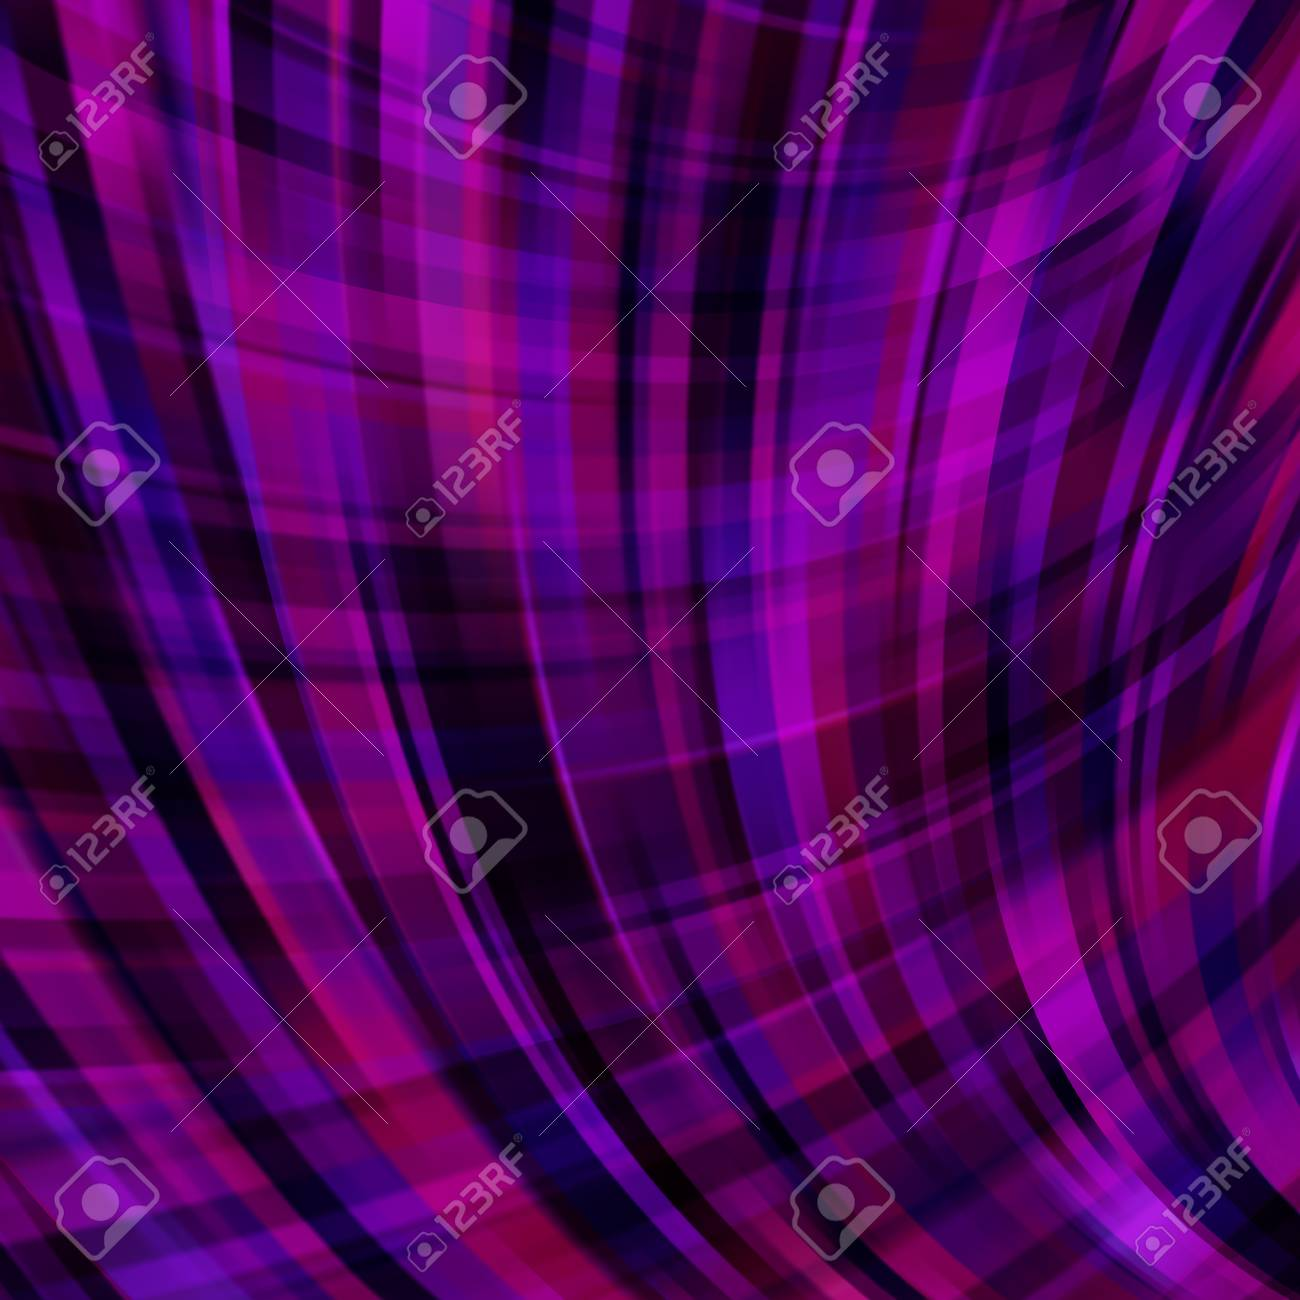 Wallpaper Pattern Abstract Shapes Pink Black Colors Stock Vector